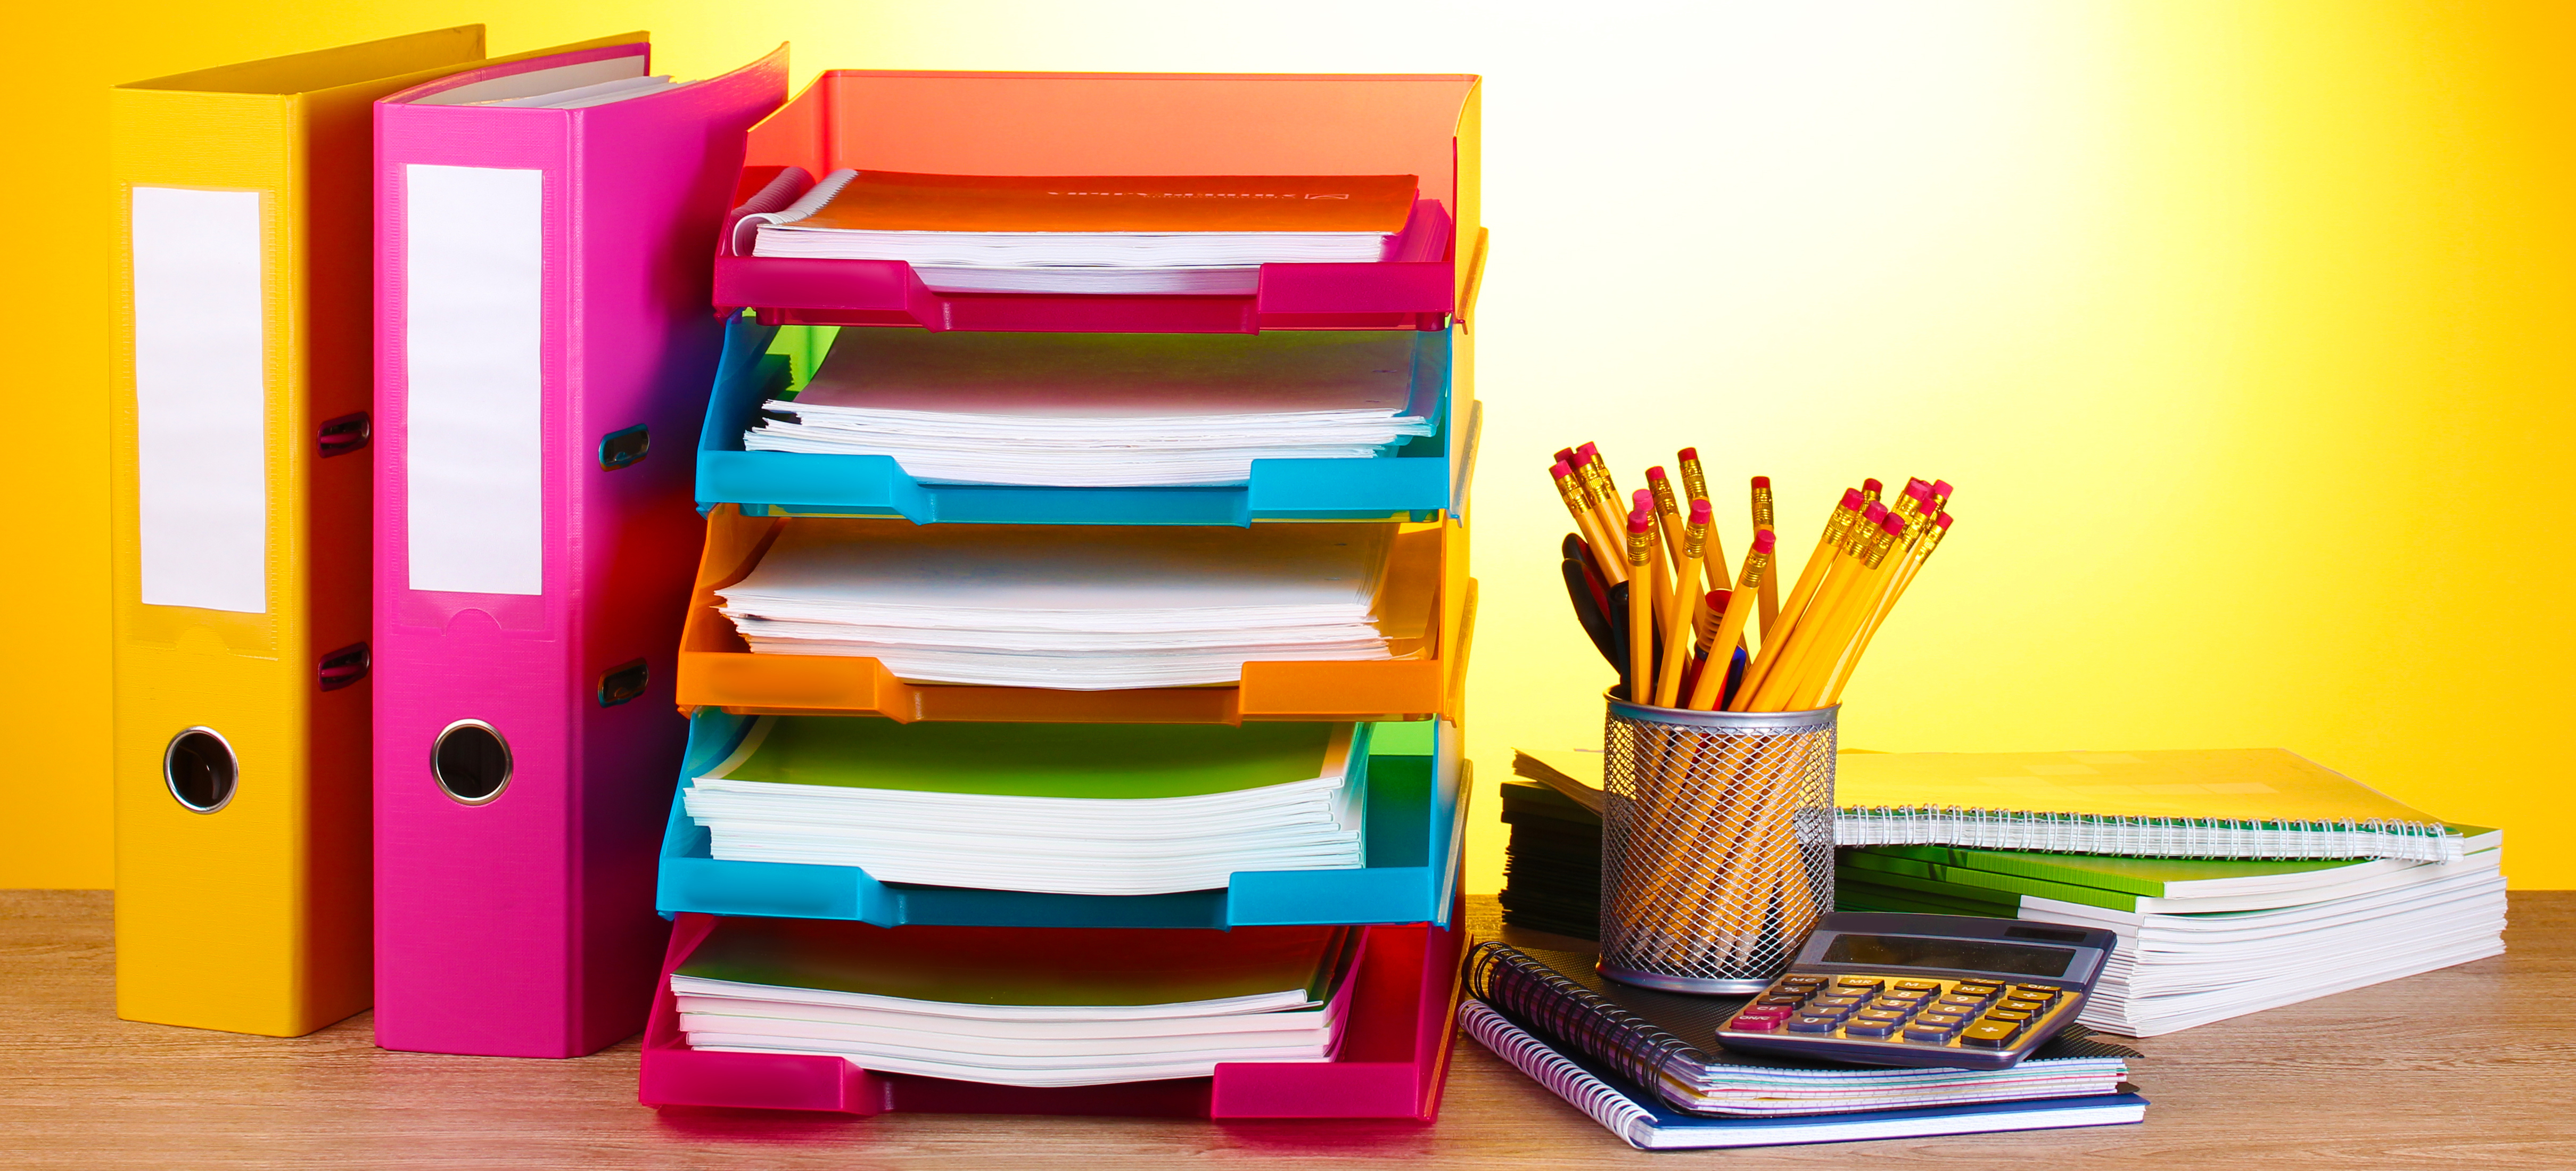 7 Frugal Ways To Purchase New Office Supplies